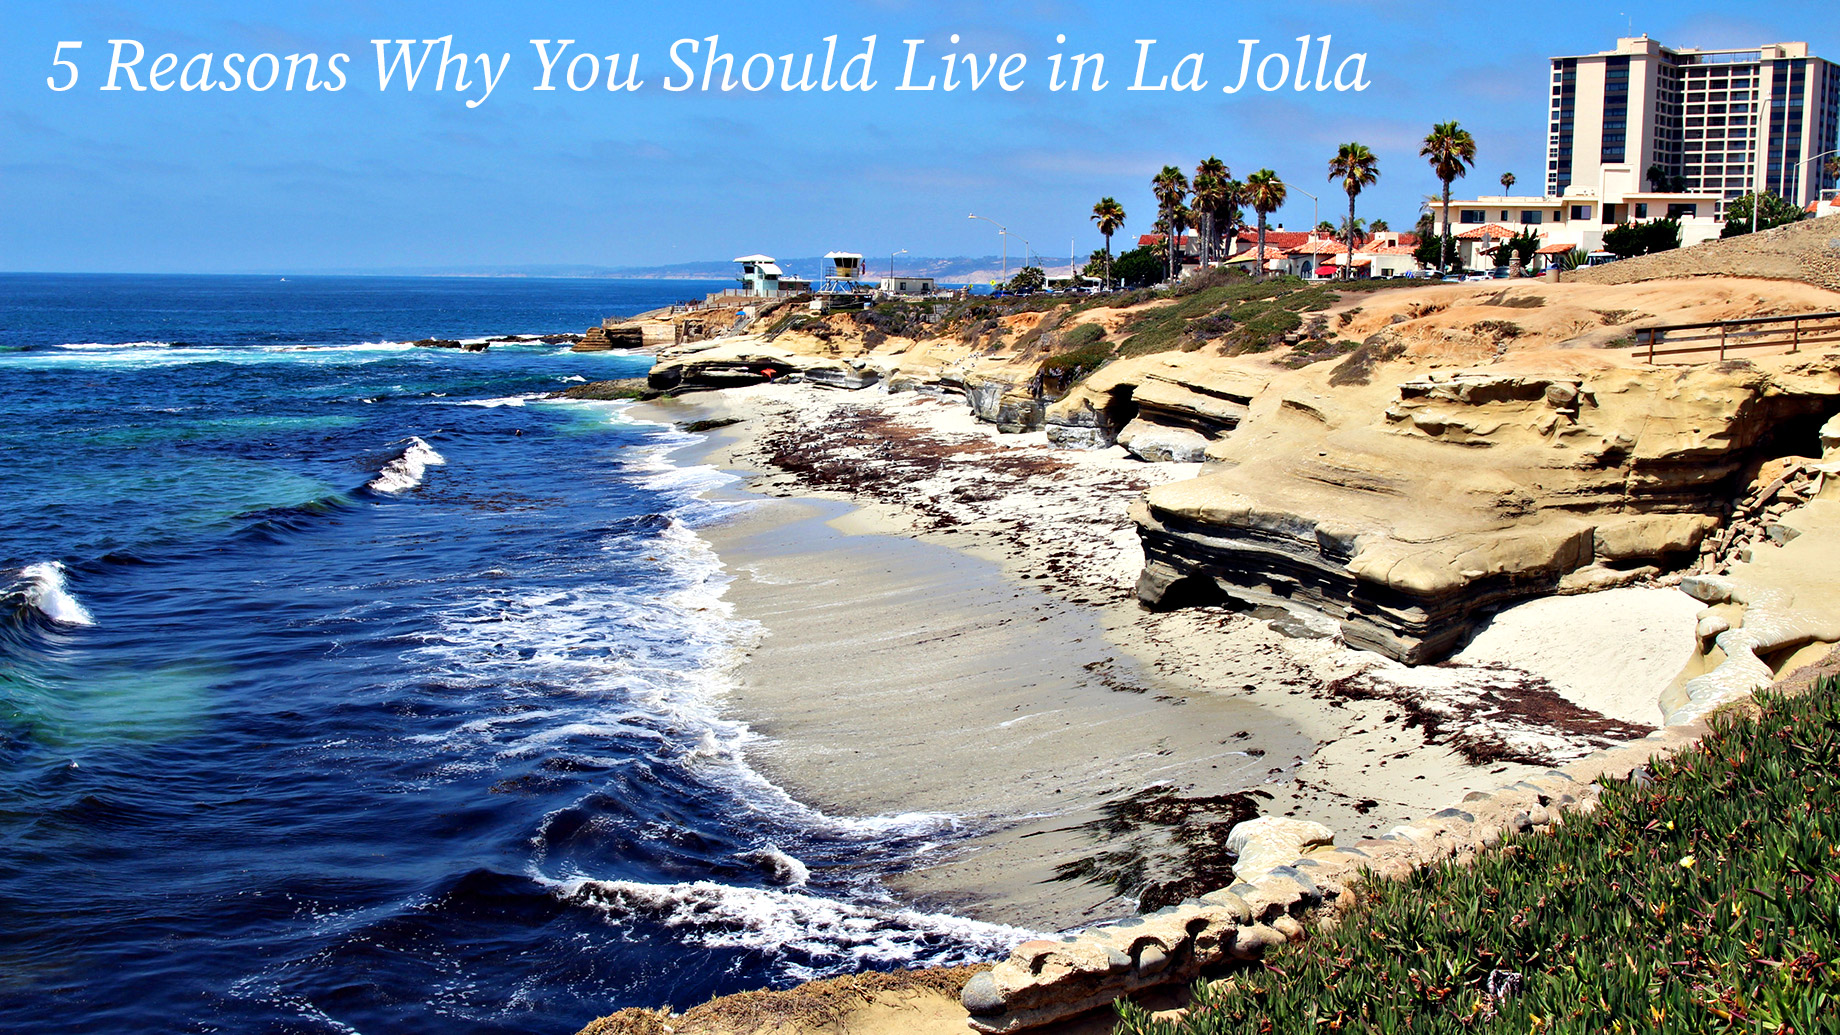 La Jolla Love - 5 Reasons Why You Should Live in La Jolla